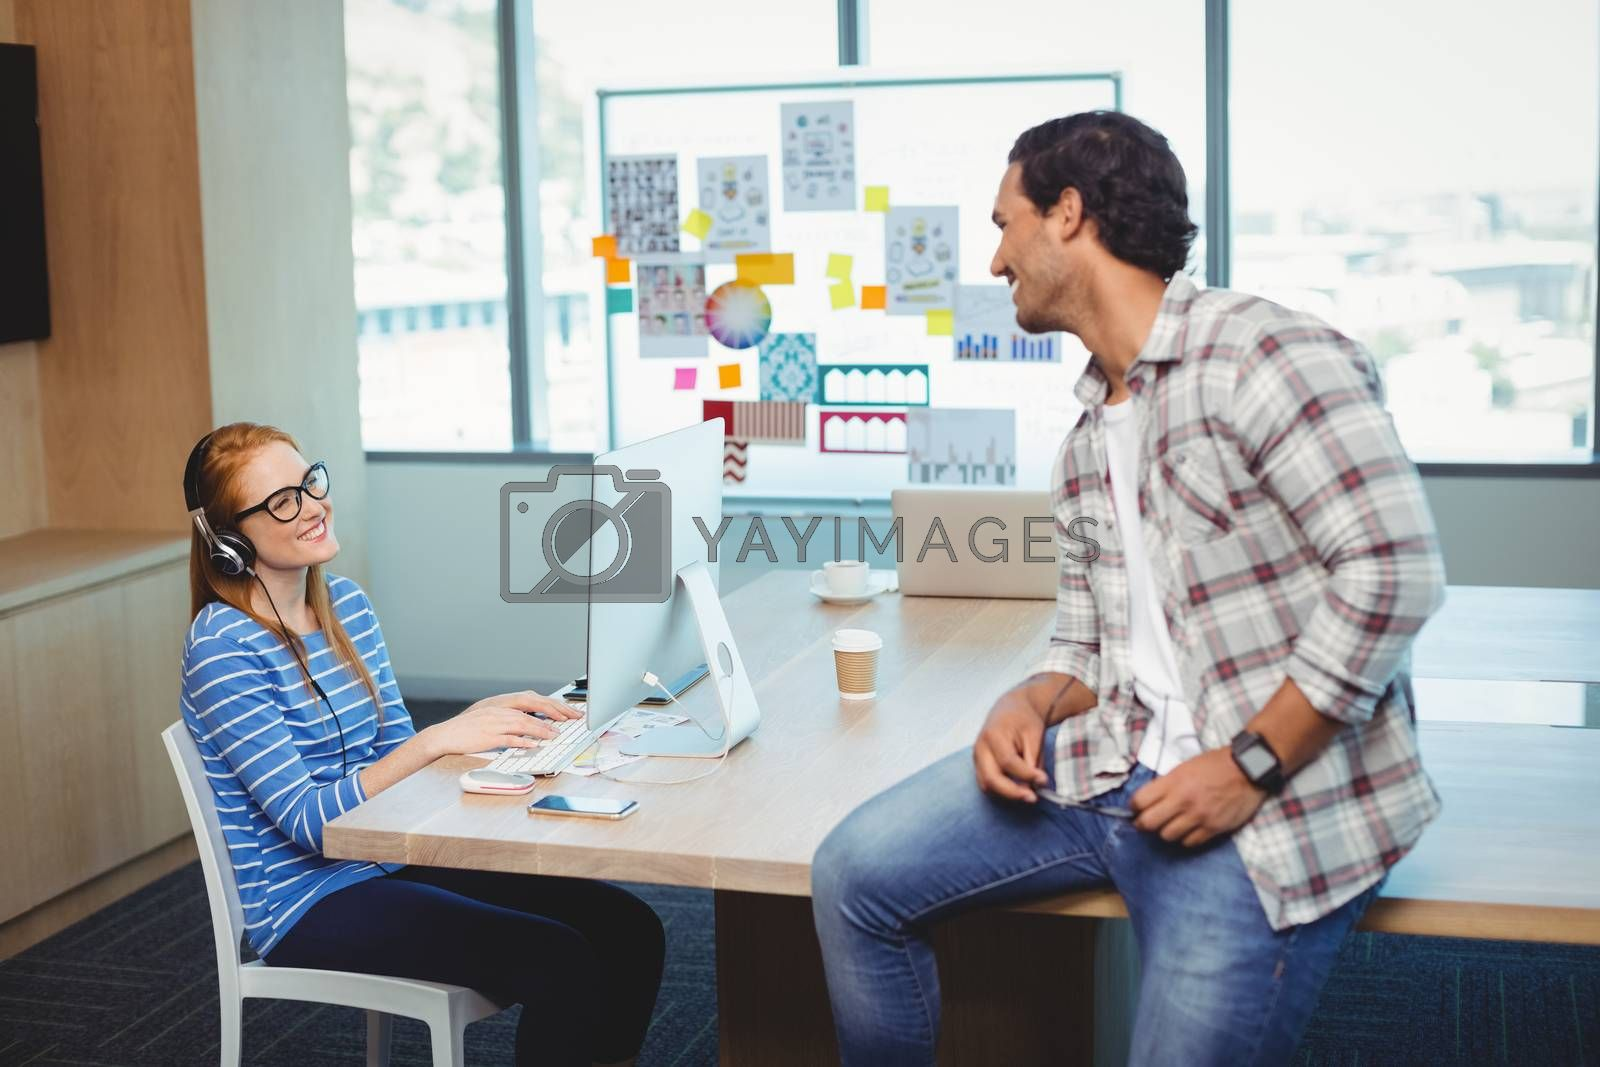 Graphic designers interacting with each other in conference room at office